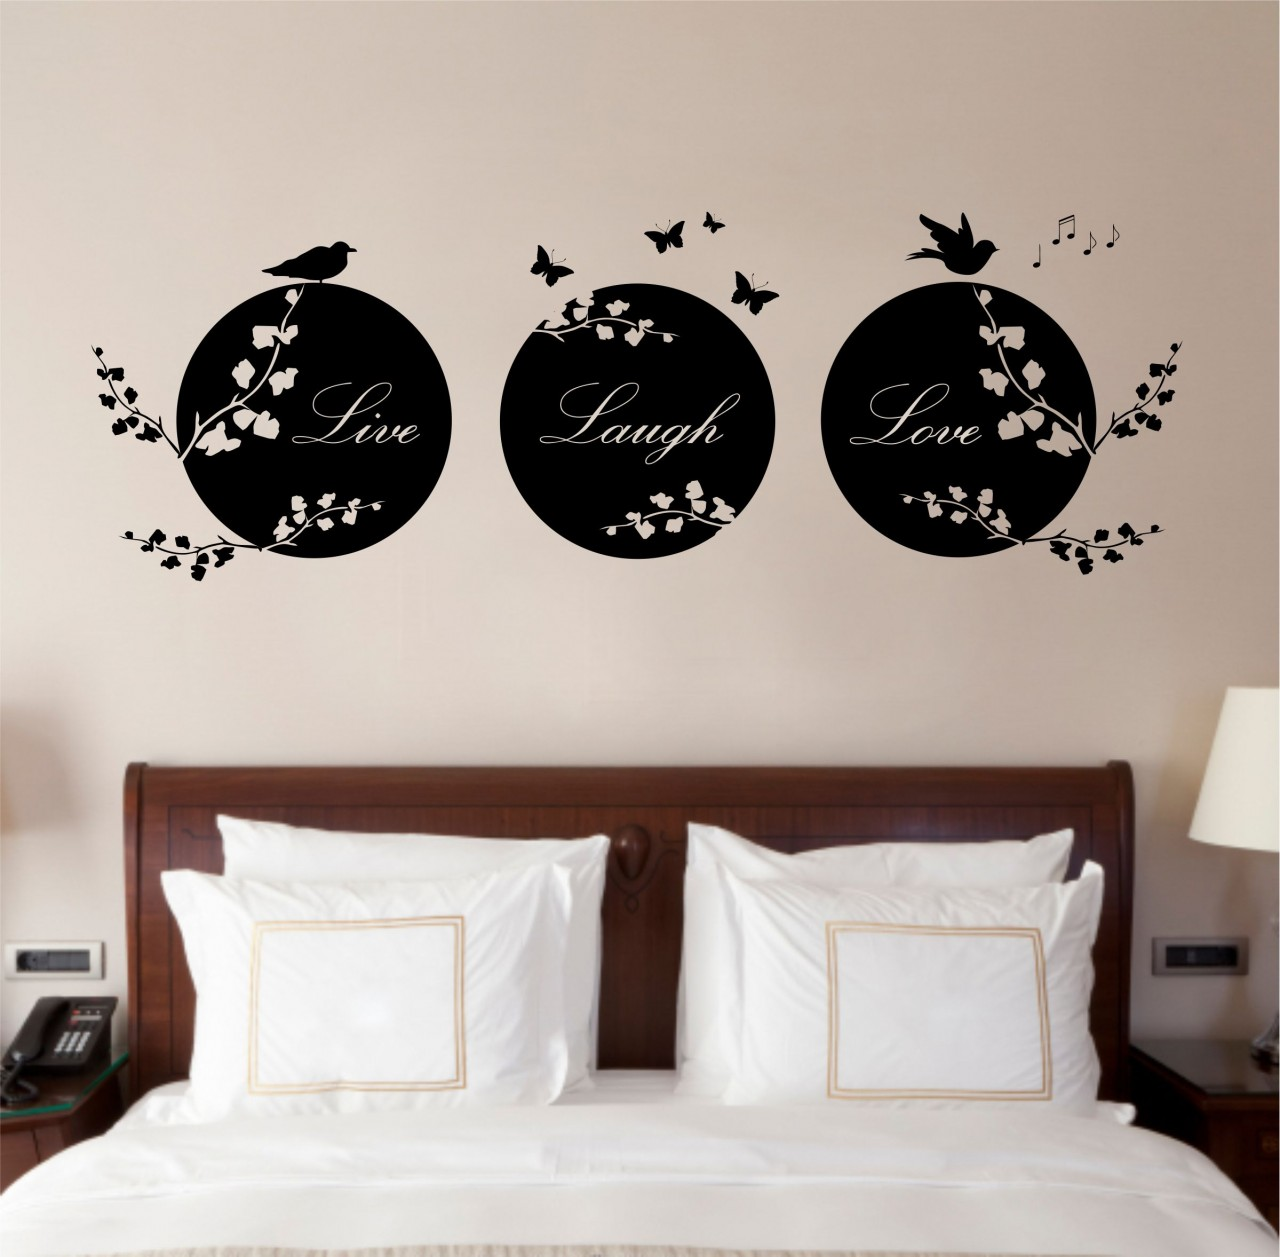 Vinyl wall art vinyl wall art craft room vinyl wall for Room decor wall